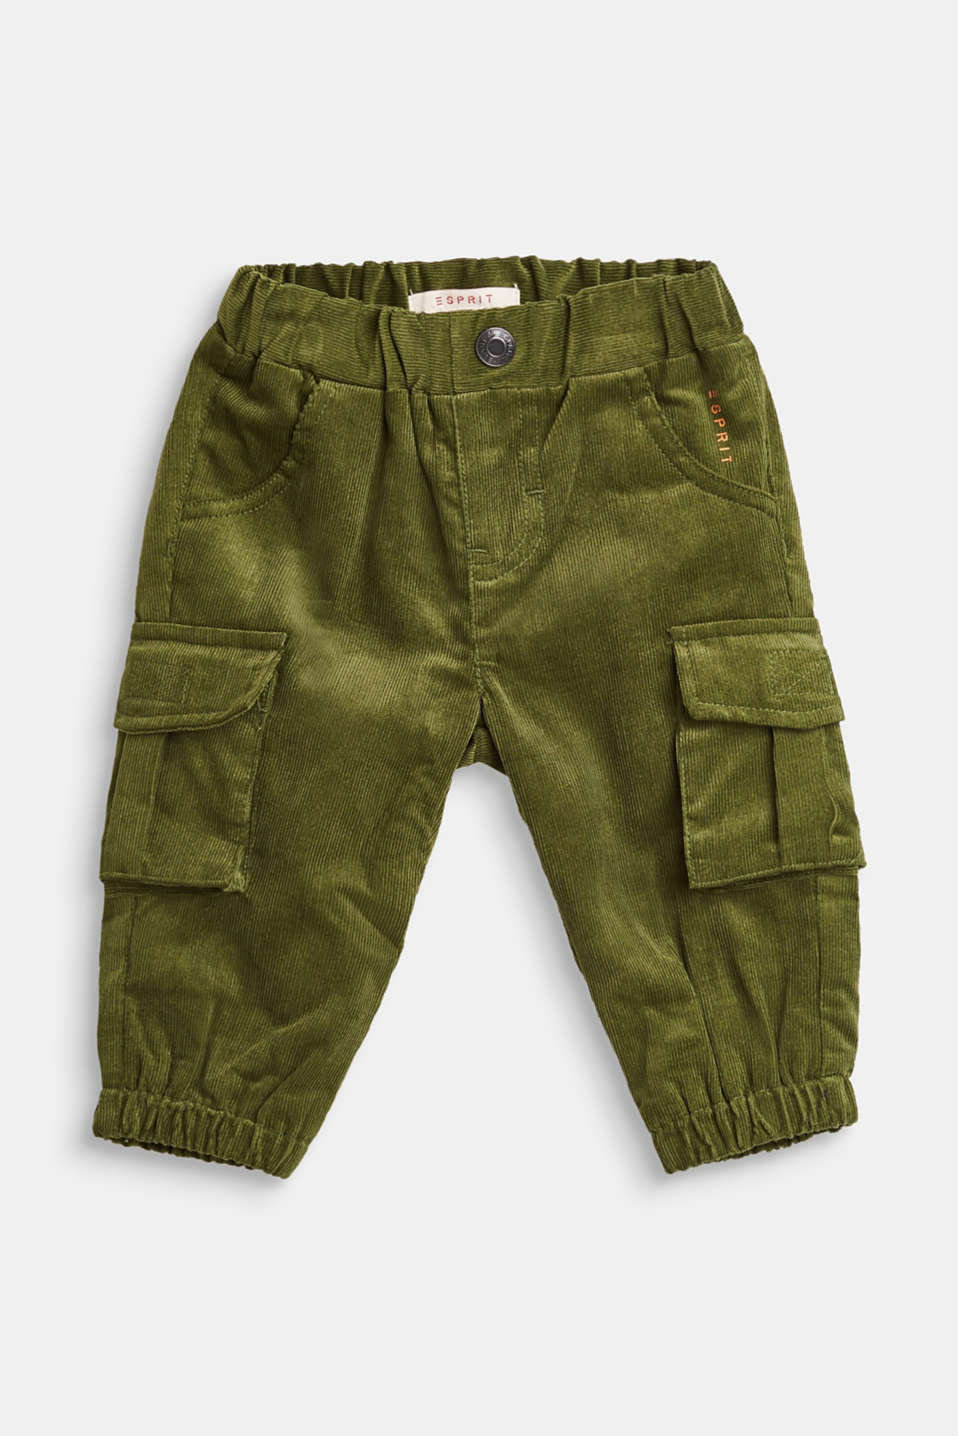 Esprit - Needlecord cargo trousers, 100% cotton